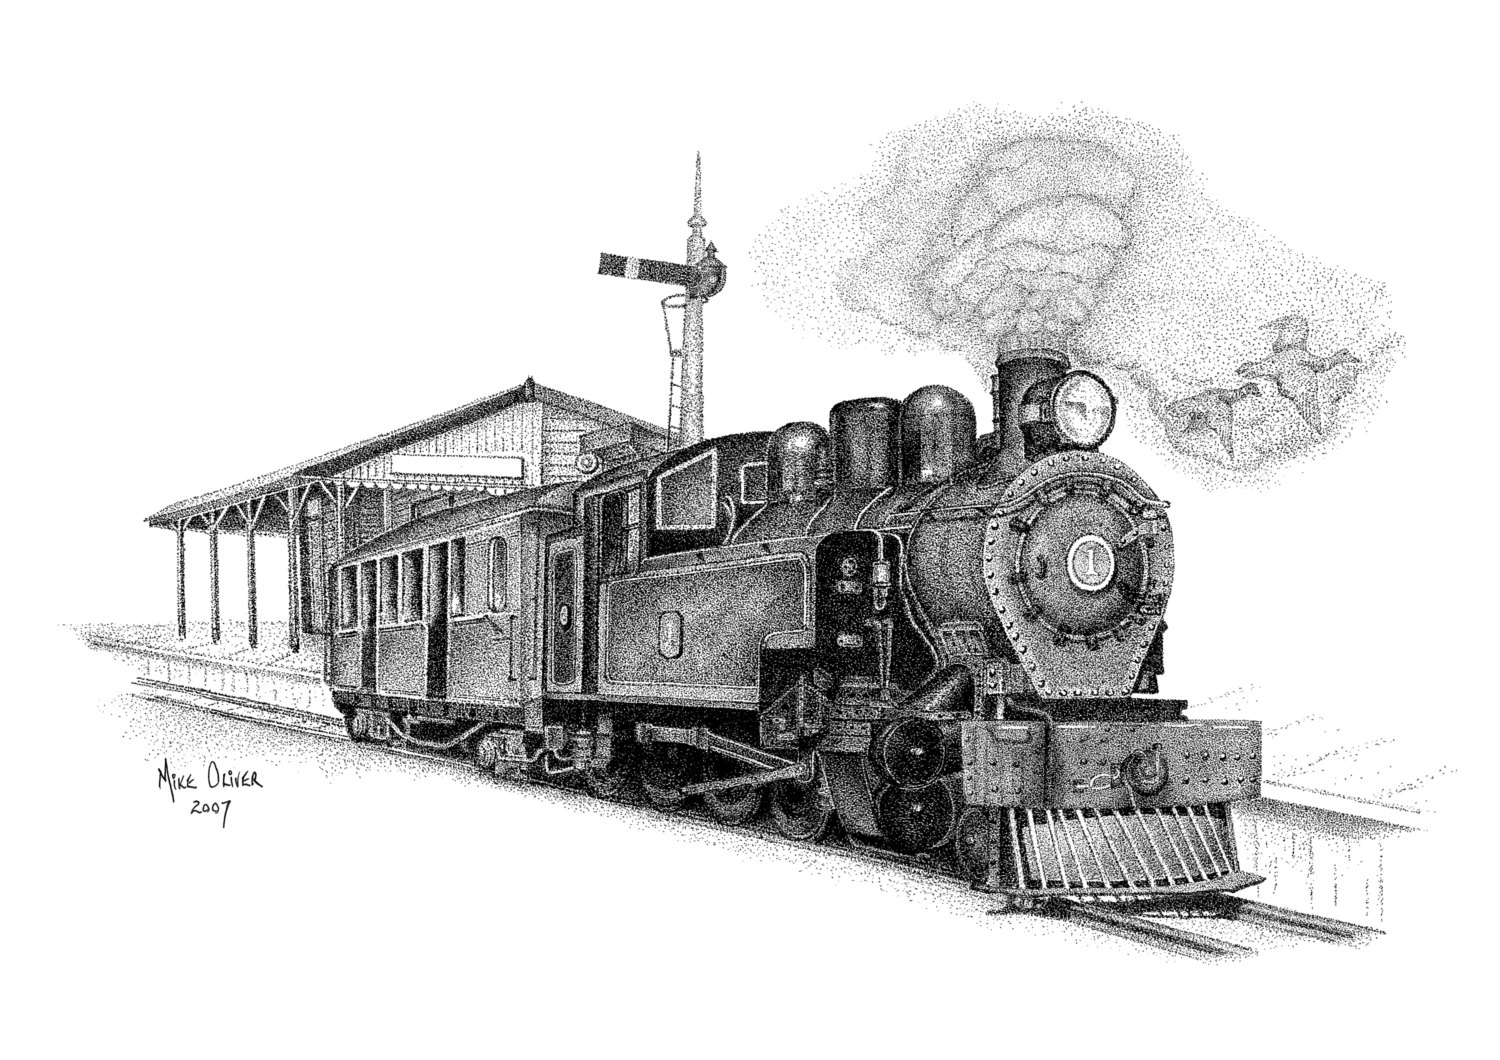 how to draw a steam engine train steam train drawing at paintingvalleycom explore engine to steam how a draw train